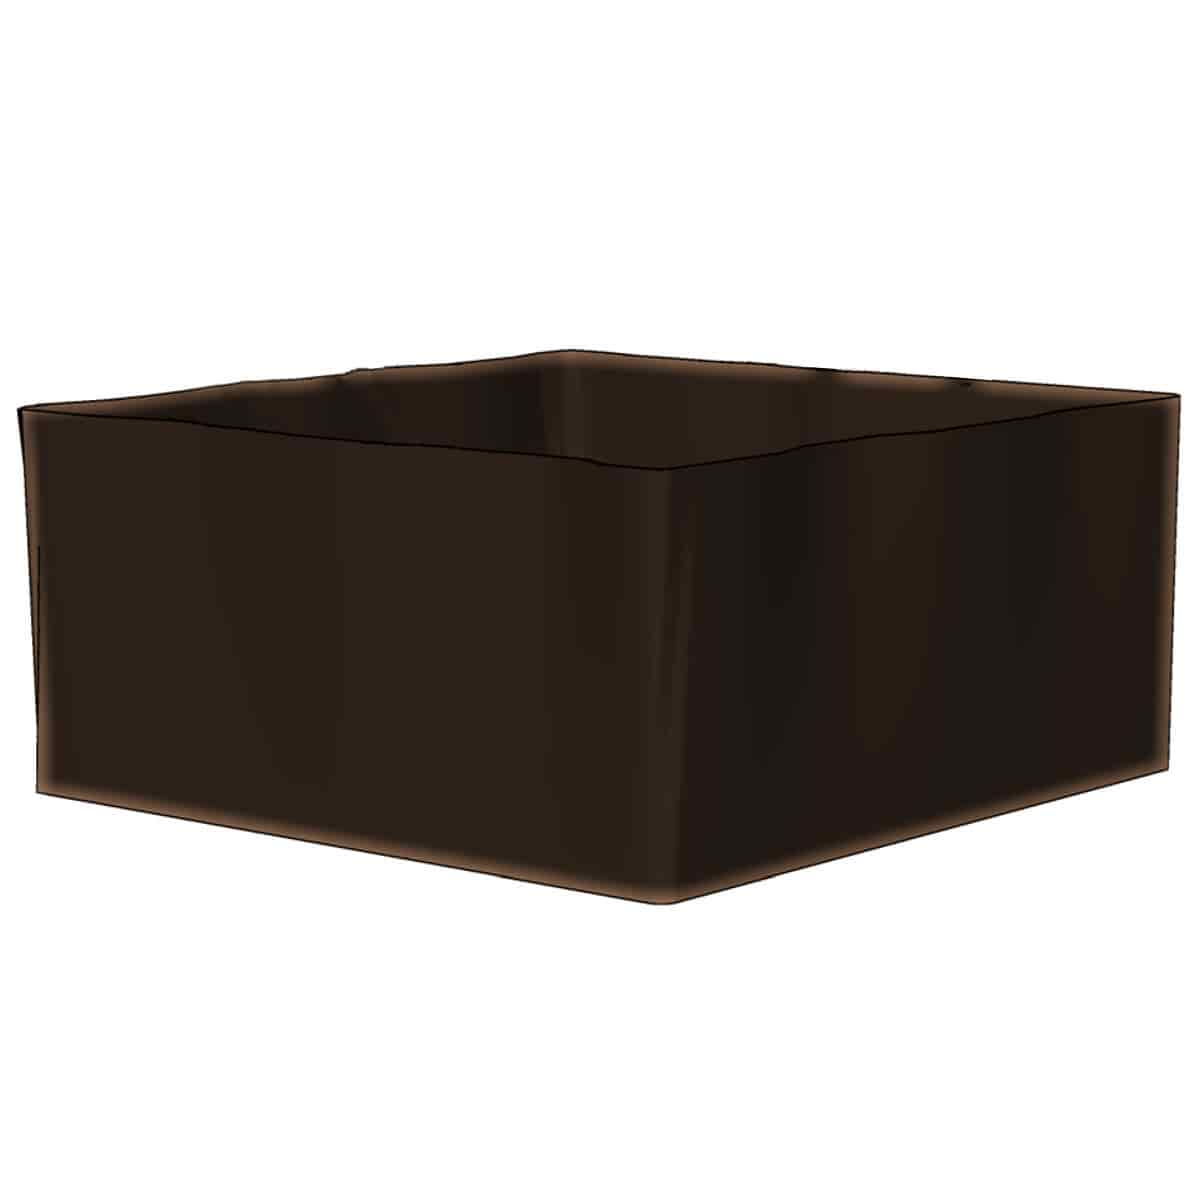 sac de rechange pour kit carr 90x90x45cm carr potager. Black Bedroom Furniture Sets. Home Design Ideas